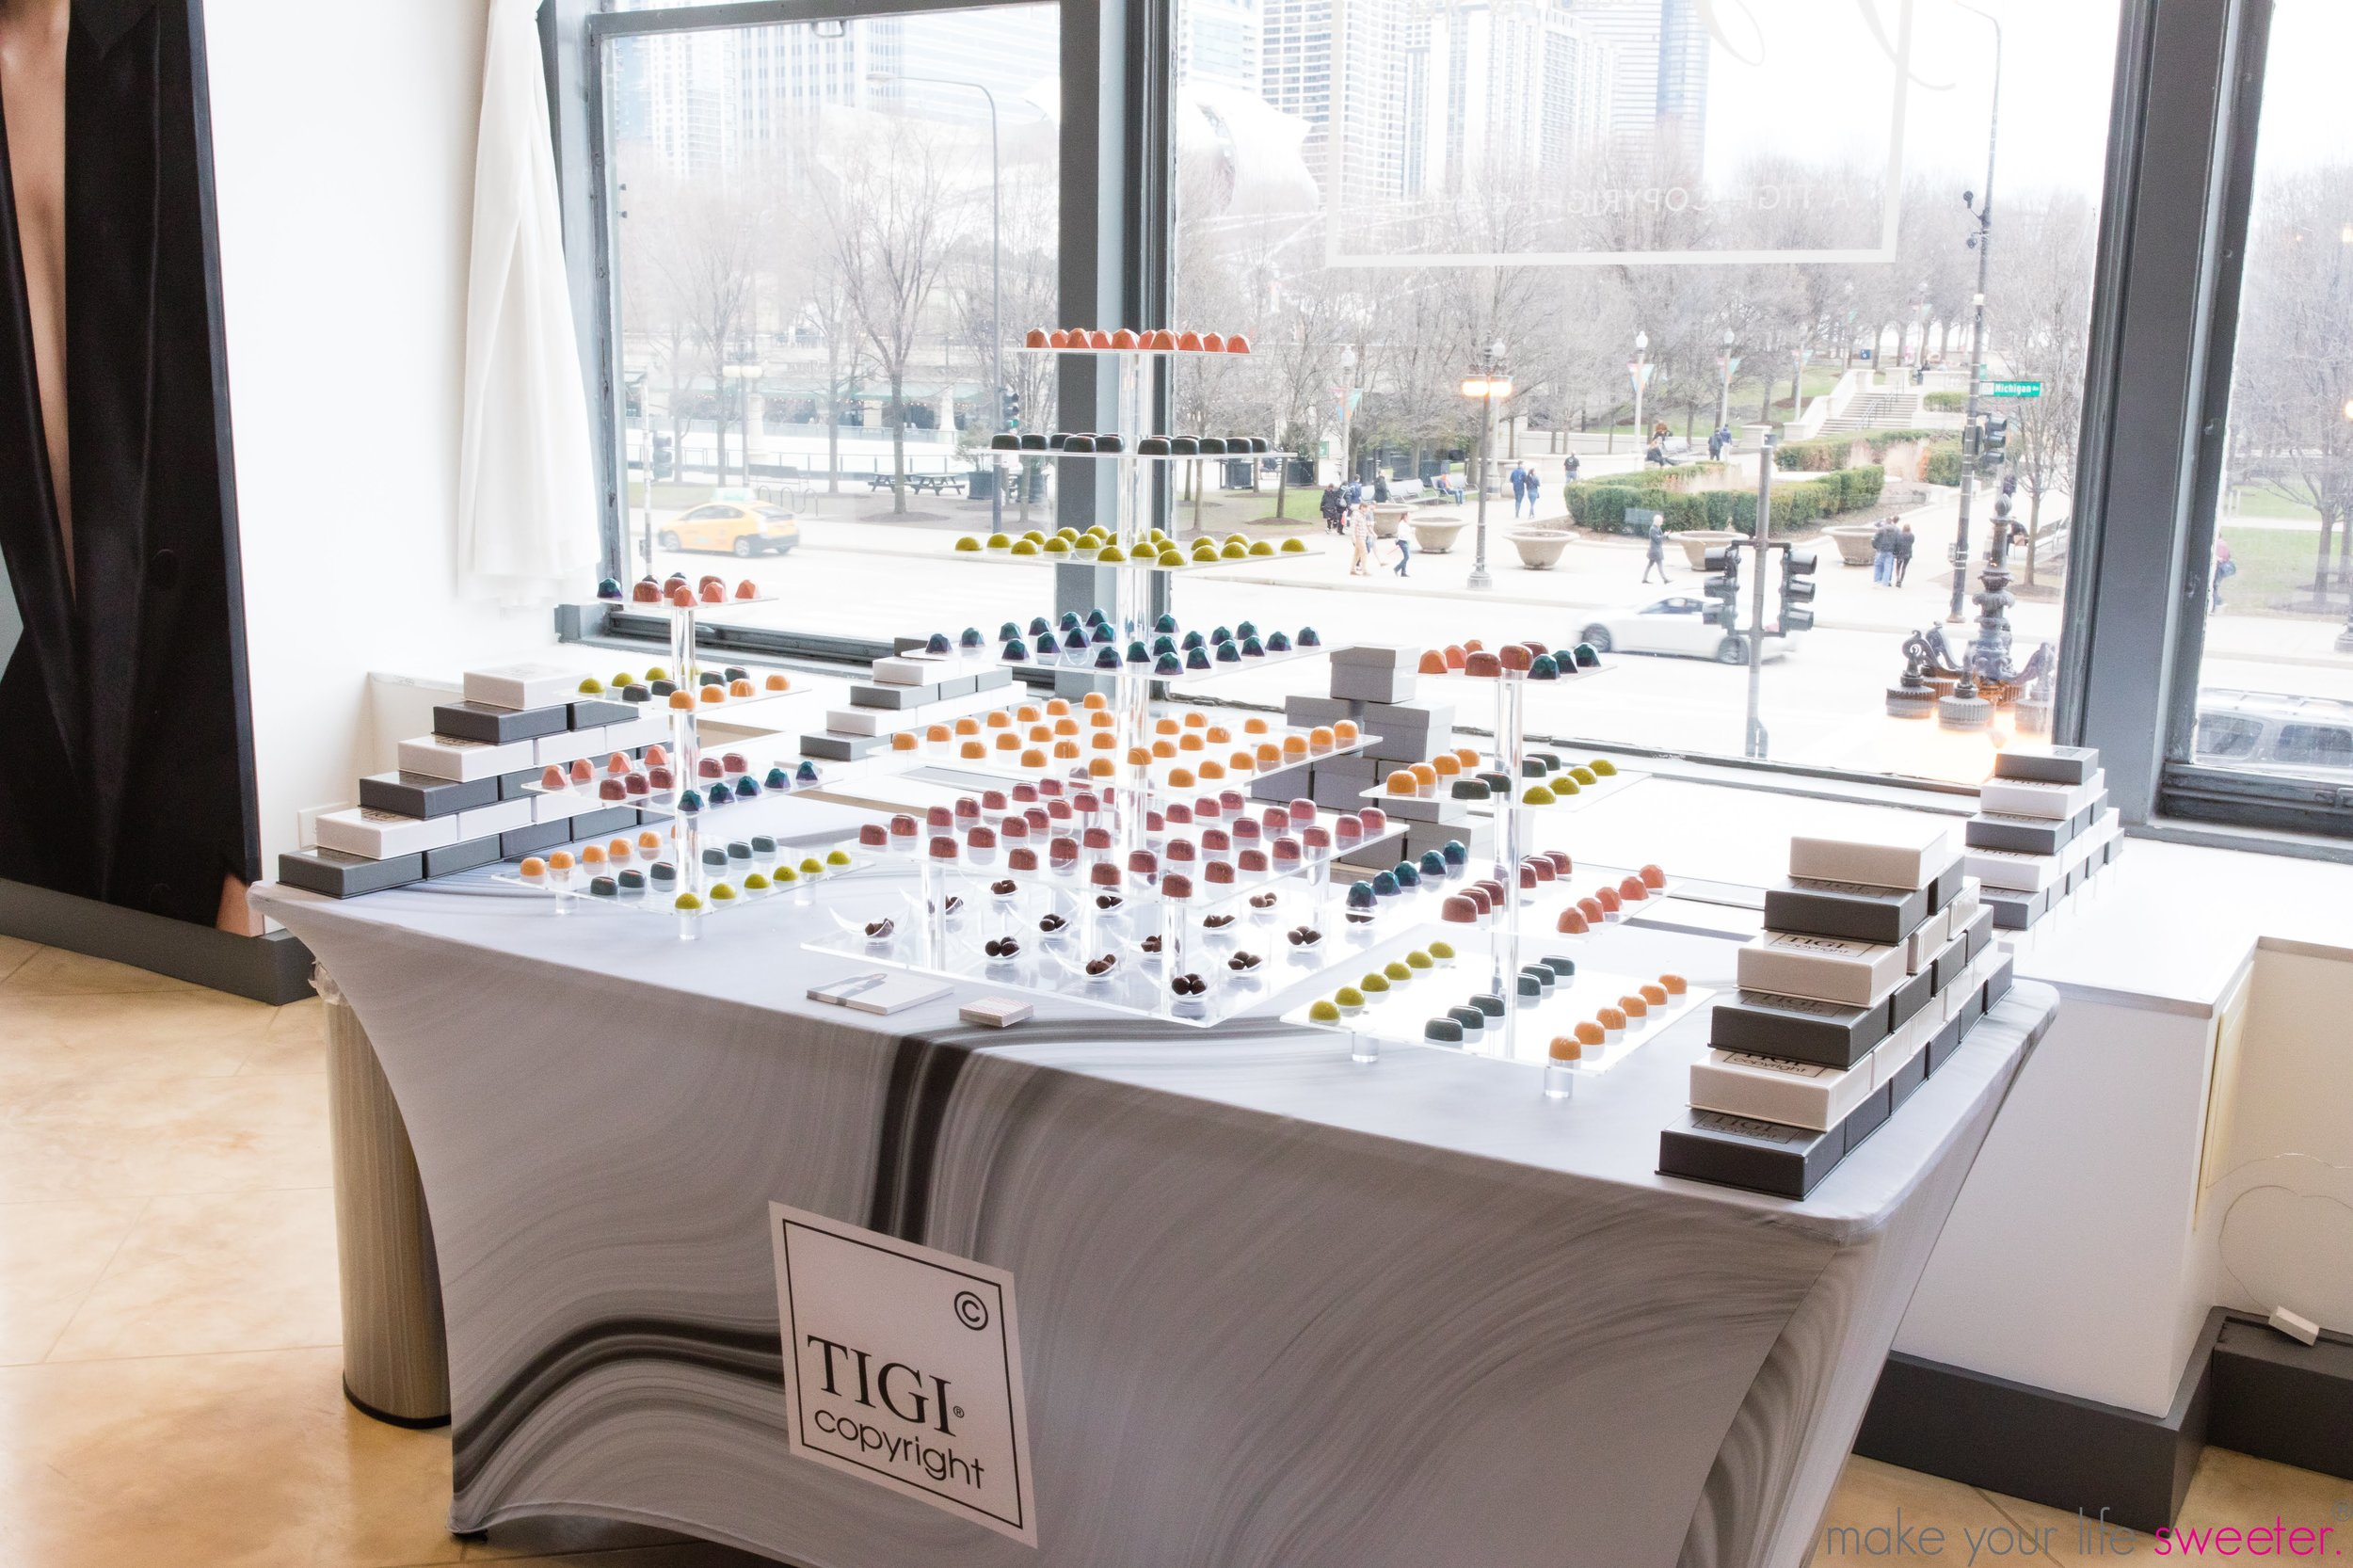 Make Your Life Sweeter Events - TIGI Fuga Centro Salon Opening - Artisanal Truffle Dessert Bar